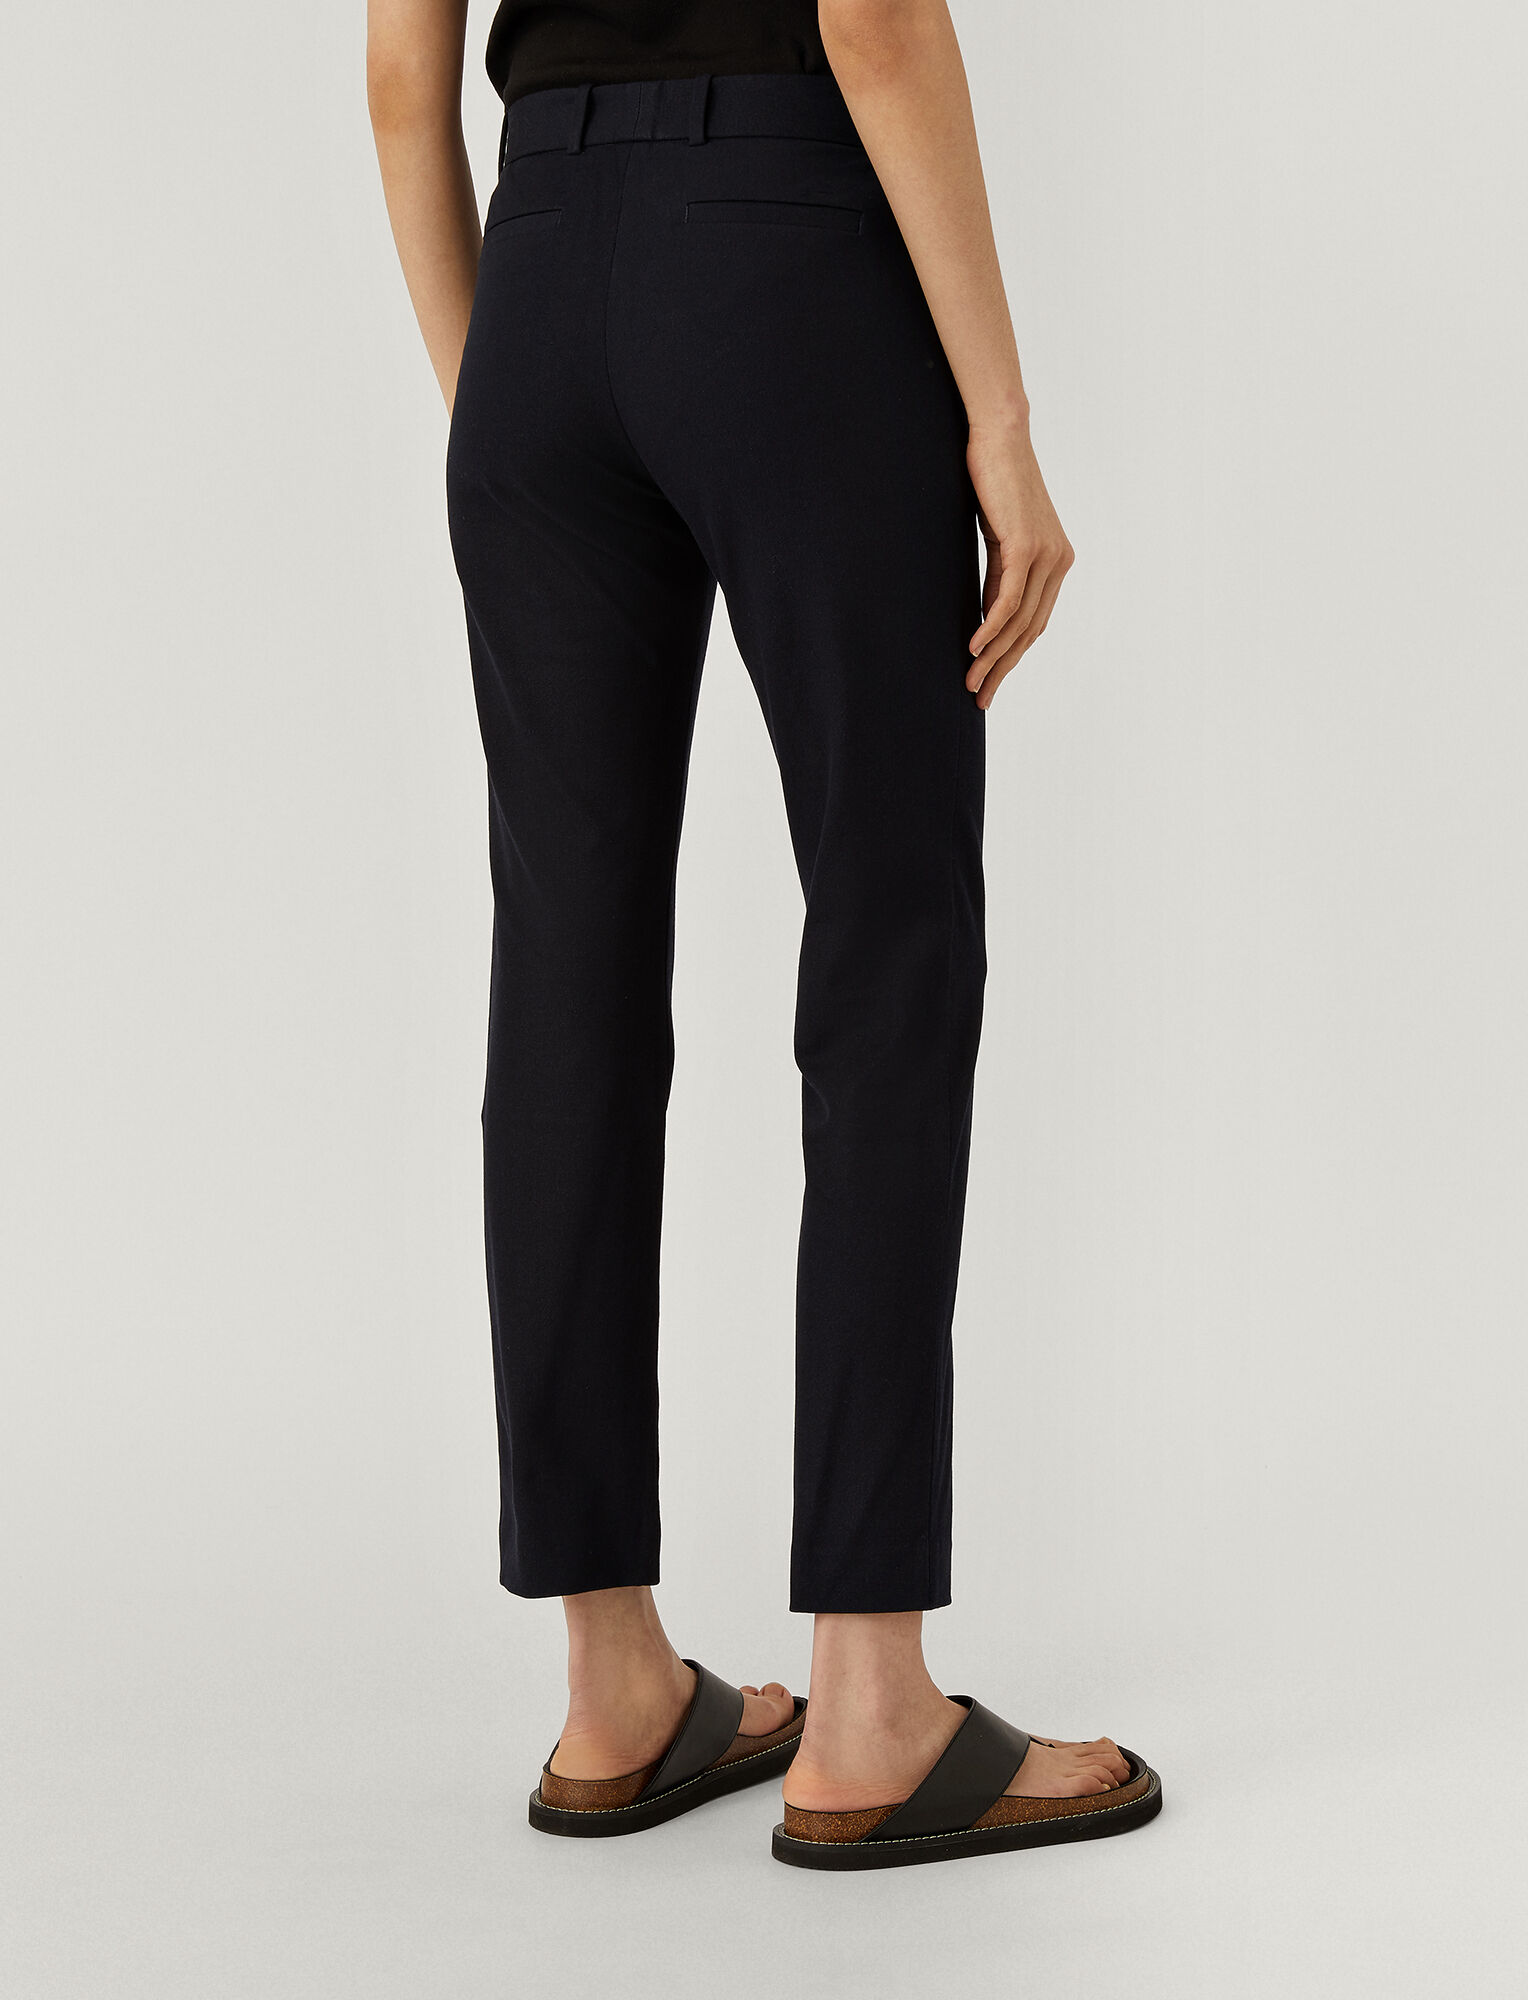 Joseph, New Eliston Gabardine Stretch Trousers, in NAVY